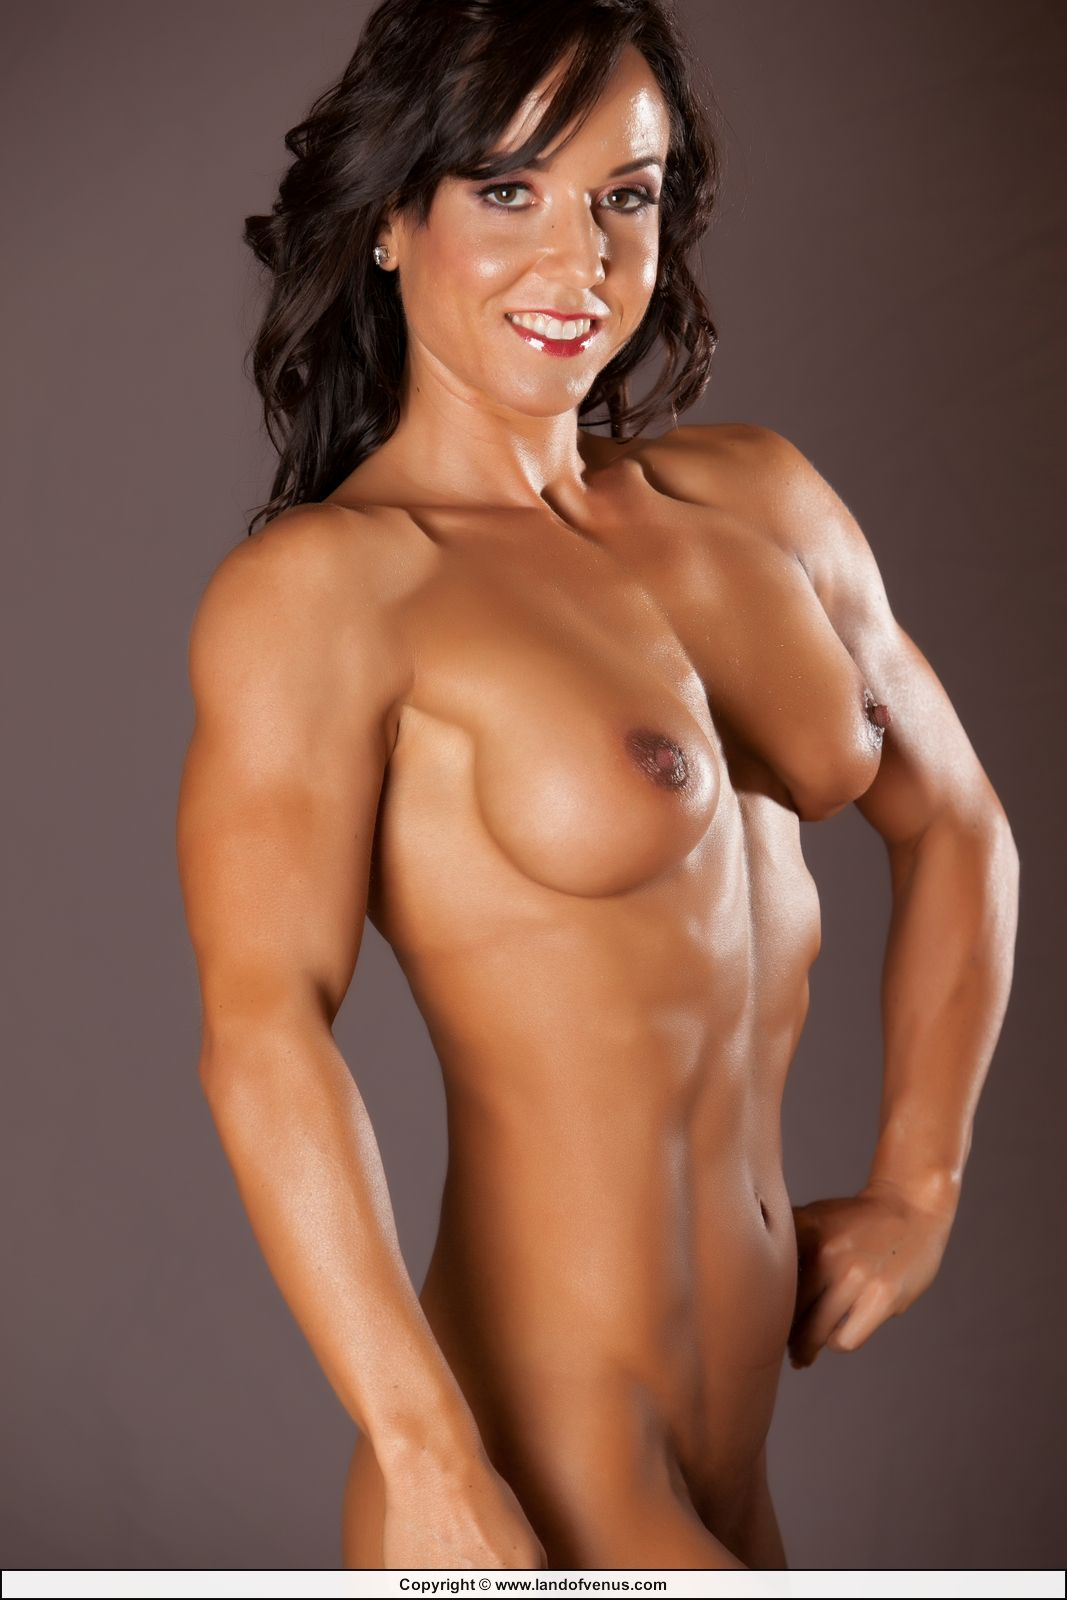 Naked Women Bodybuilders  Land Of Venus - Nude Female -7896